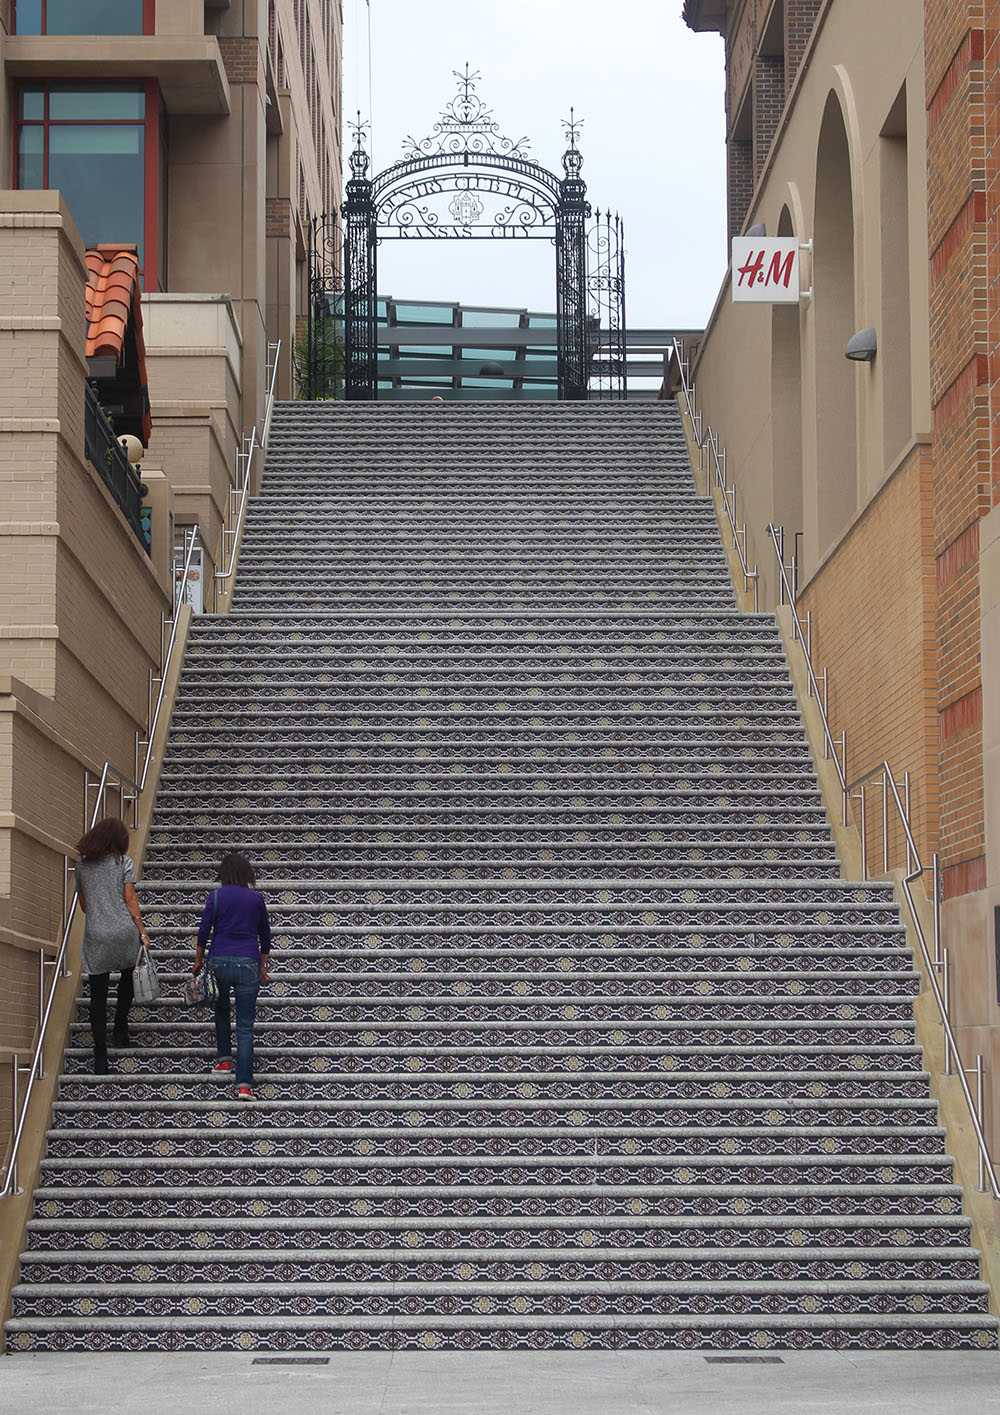 A mother and her daugher ascend a staircase leading up to a gate displaying a